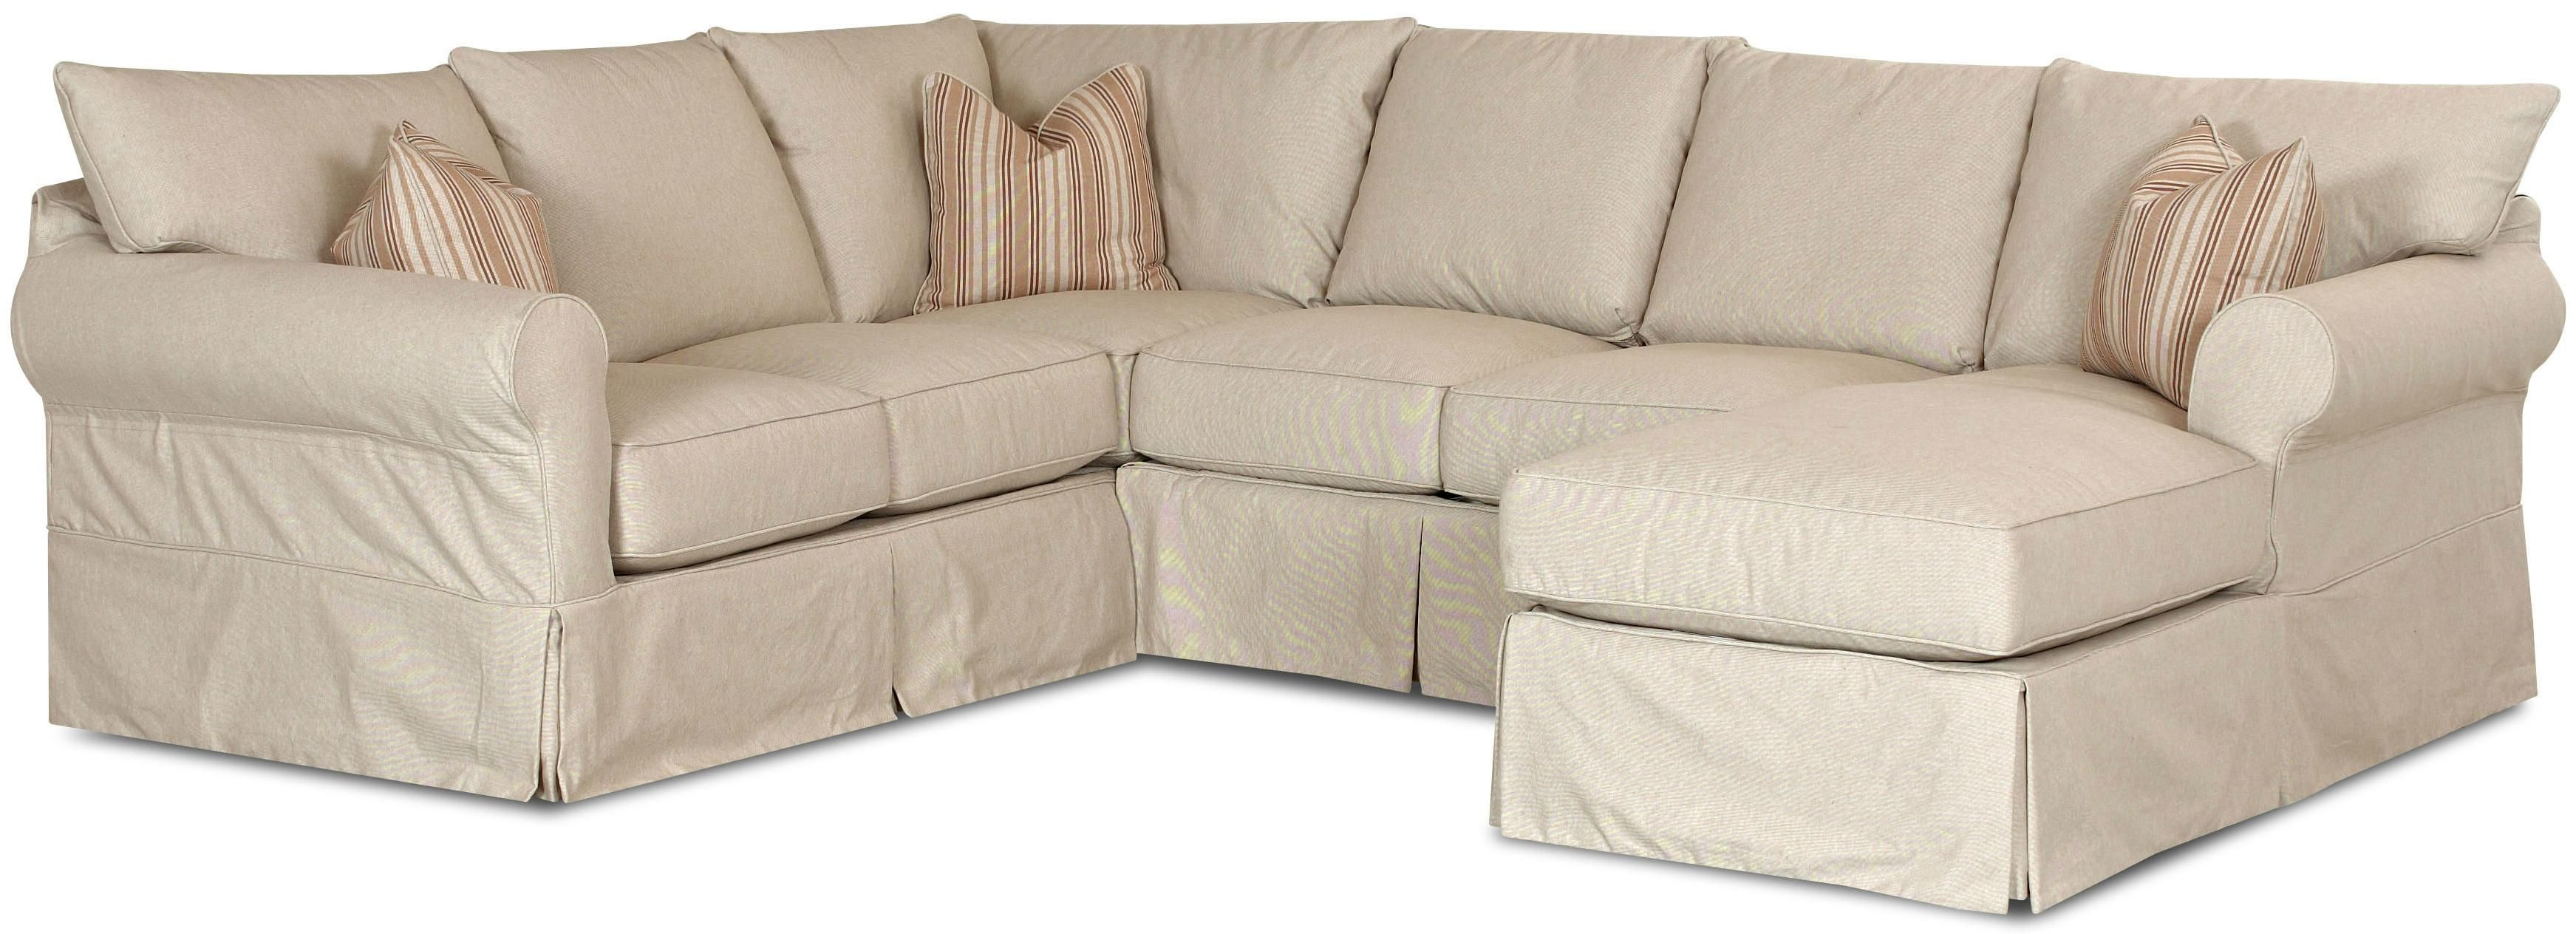 10 Sectional Sofa Cover Awesome And Also Lovely Sofa L